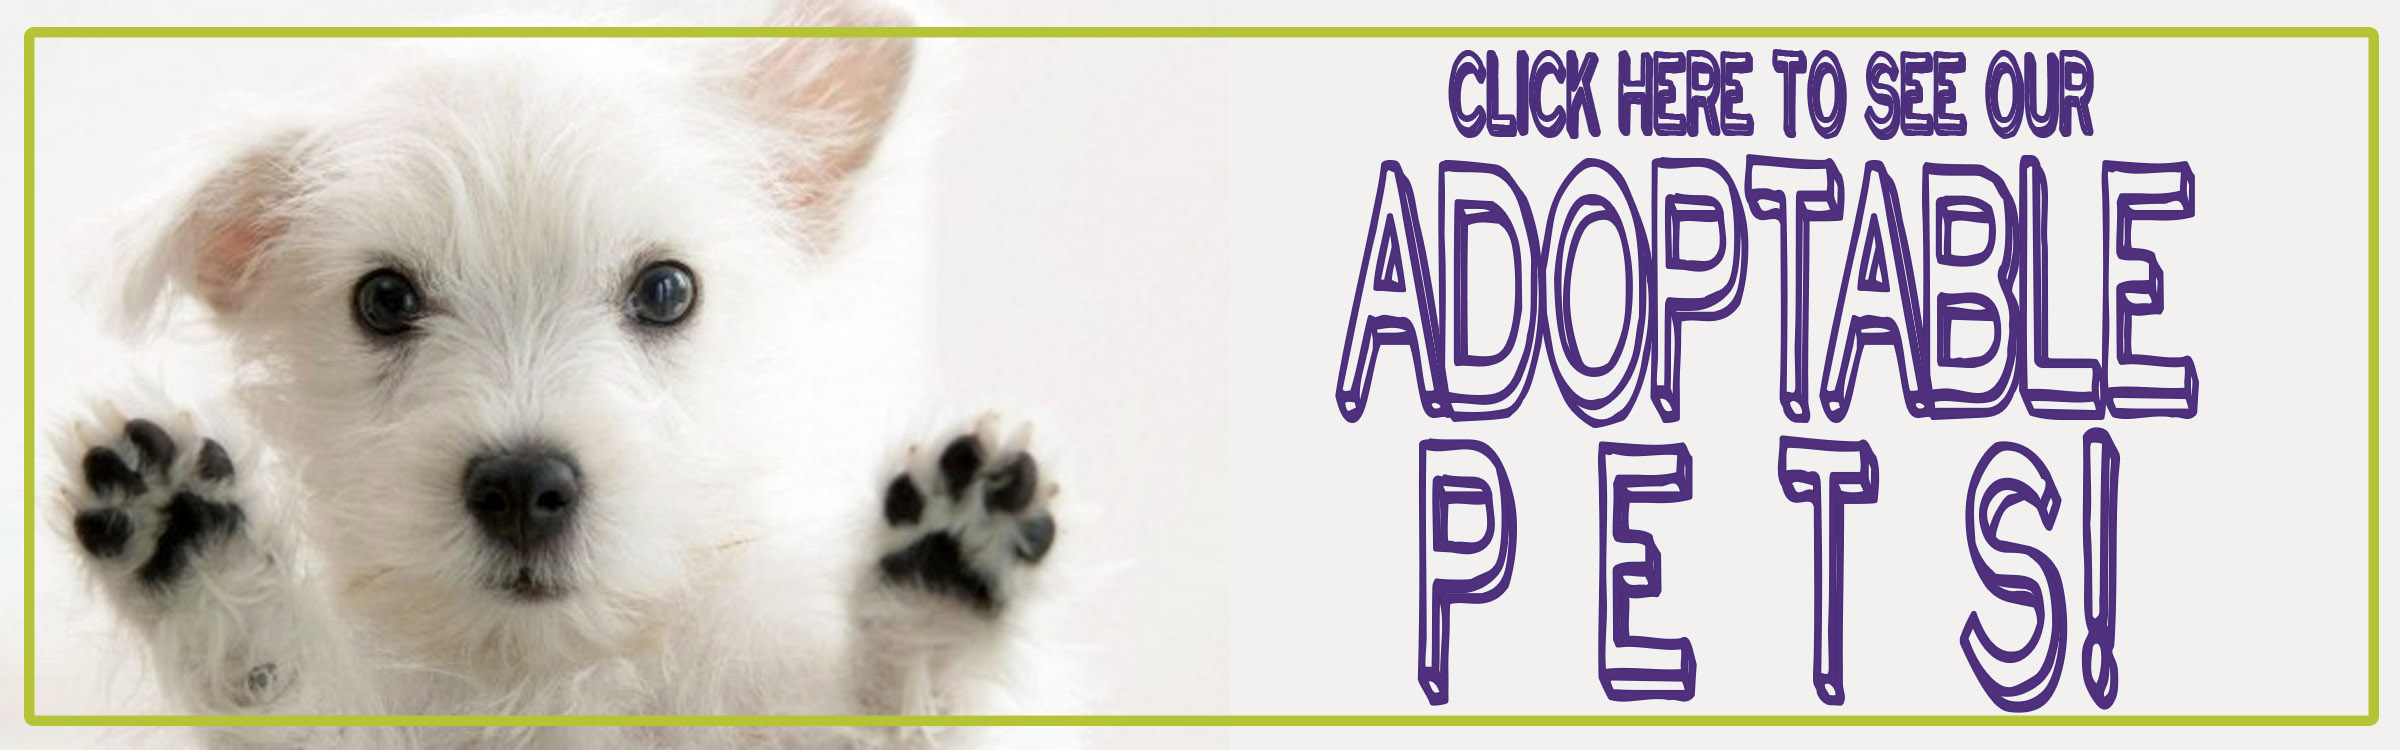 Rescue Dogs Puppies For Adoption Adopt A Pet Search Adoptable Pets